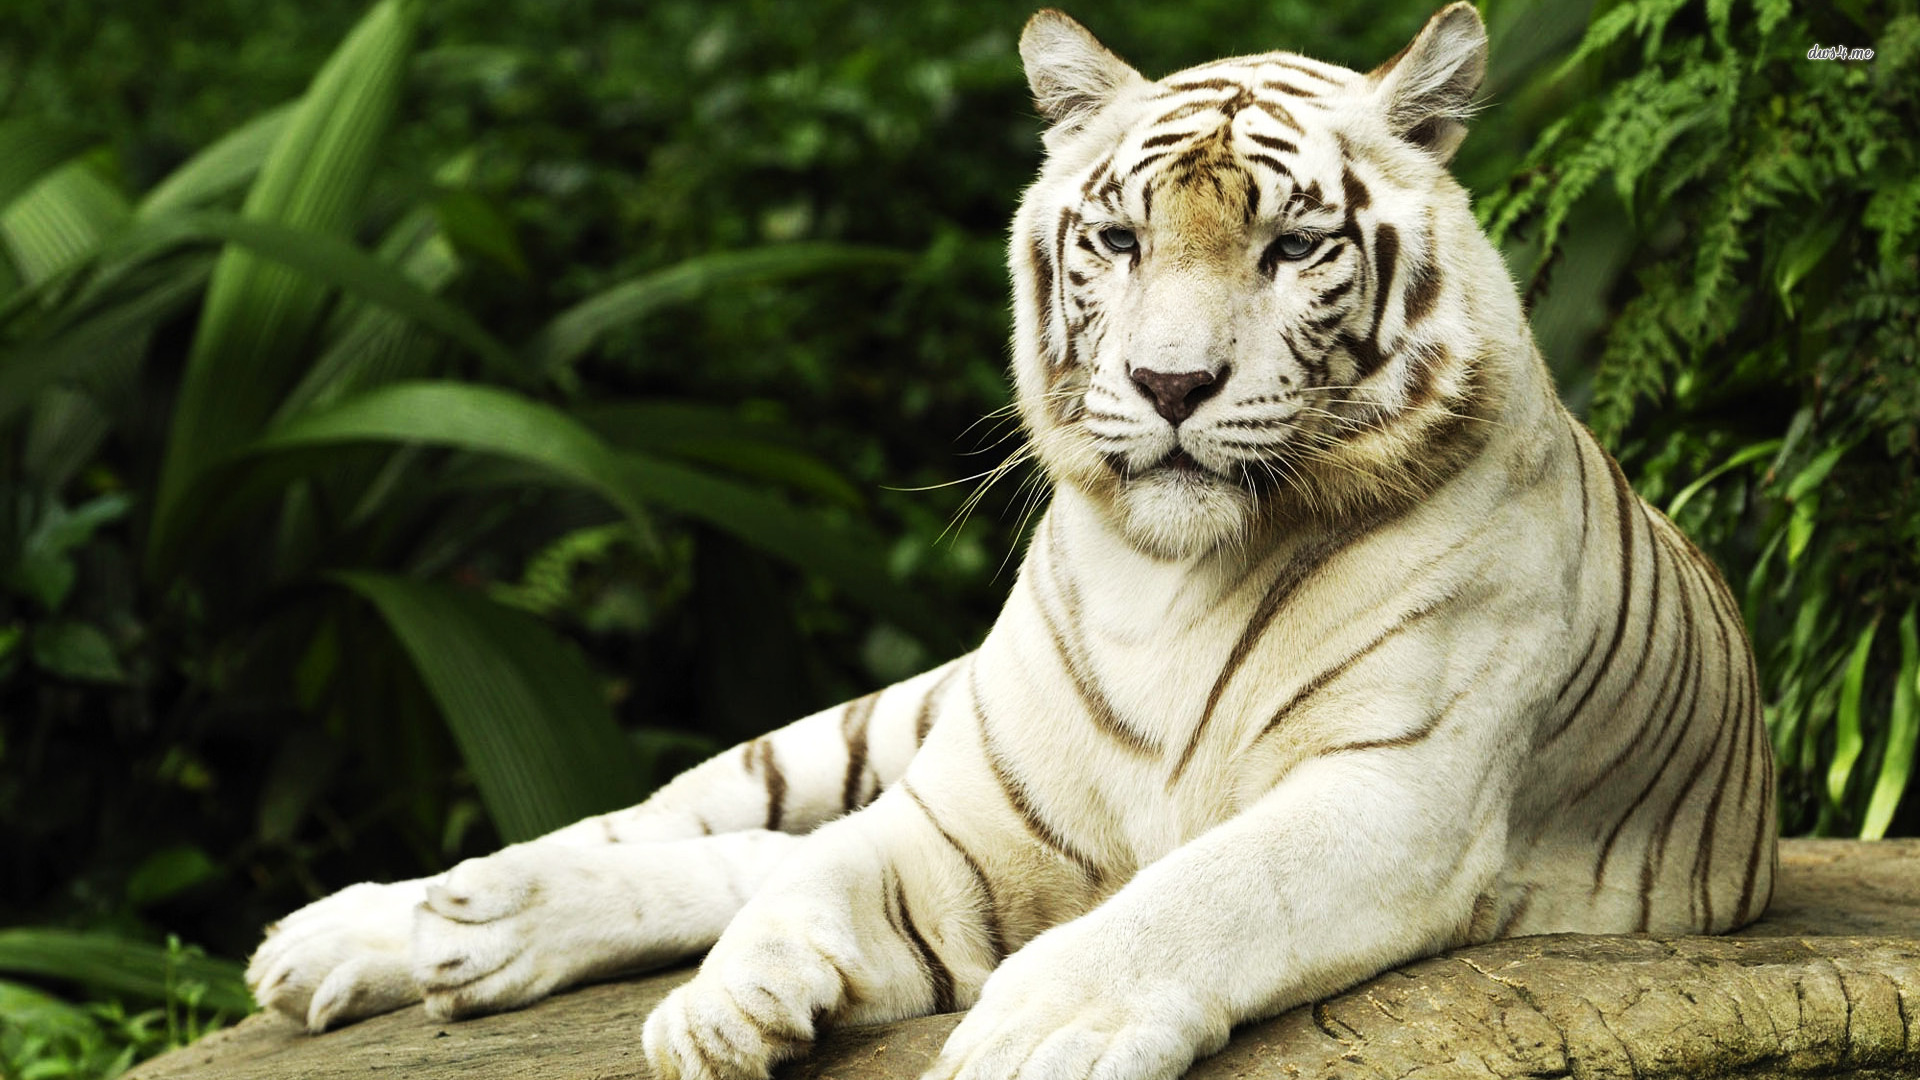 white tiger animal wallpaper - photo #1